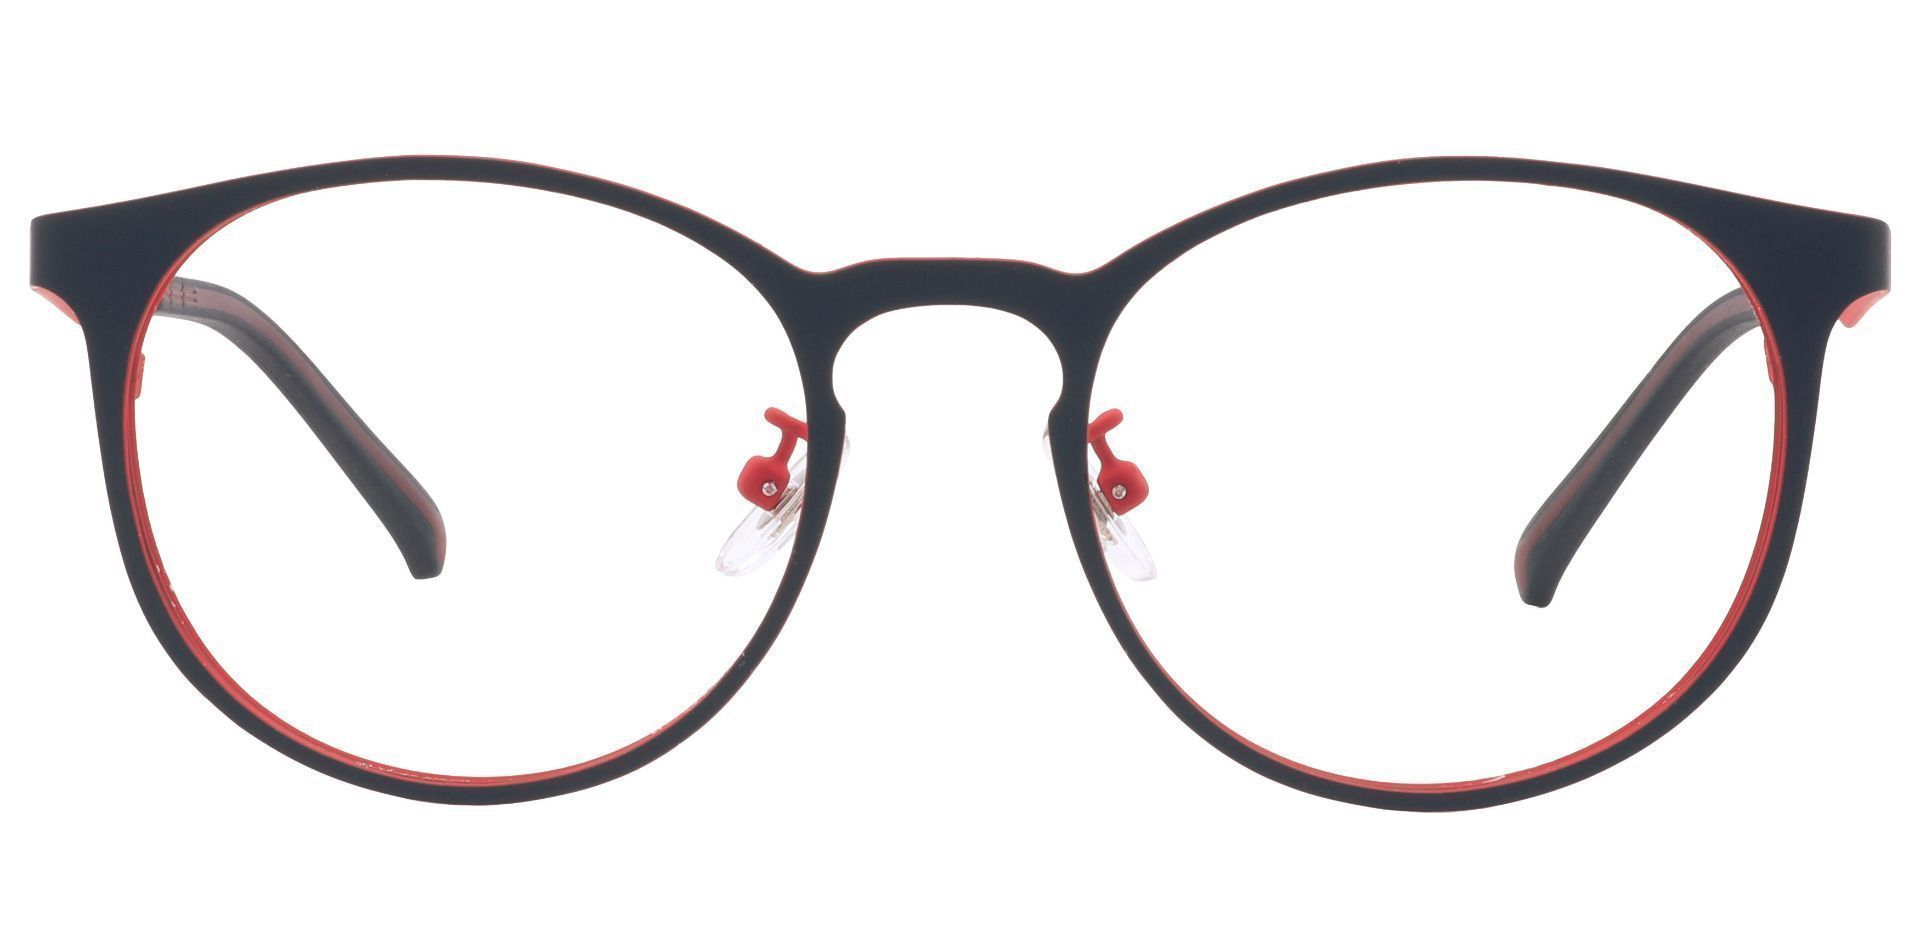 Wallace Oval Lined Bifocal Glasses - Red